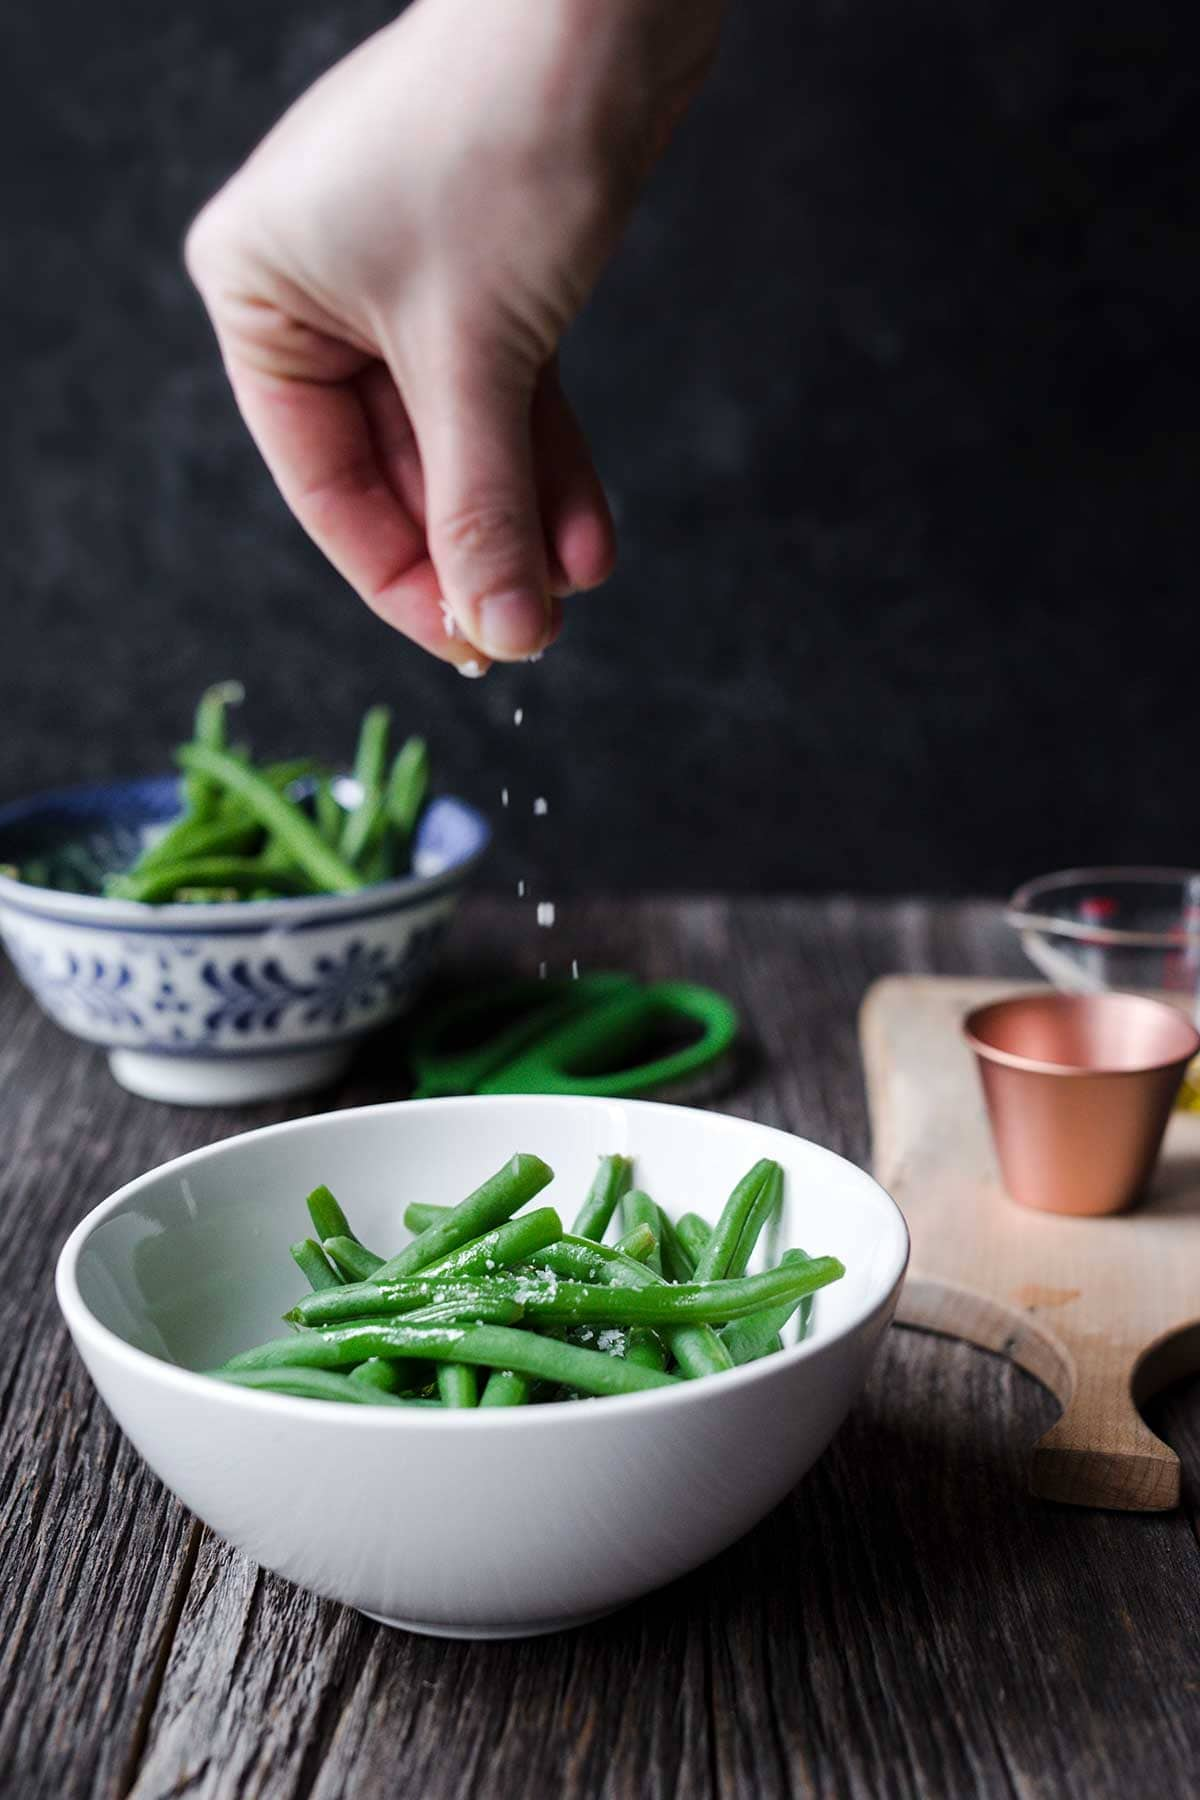 Sprinkling salt over green beans